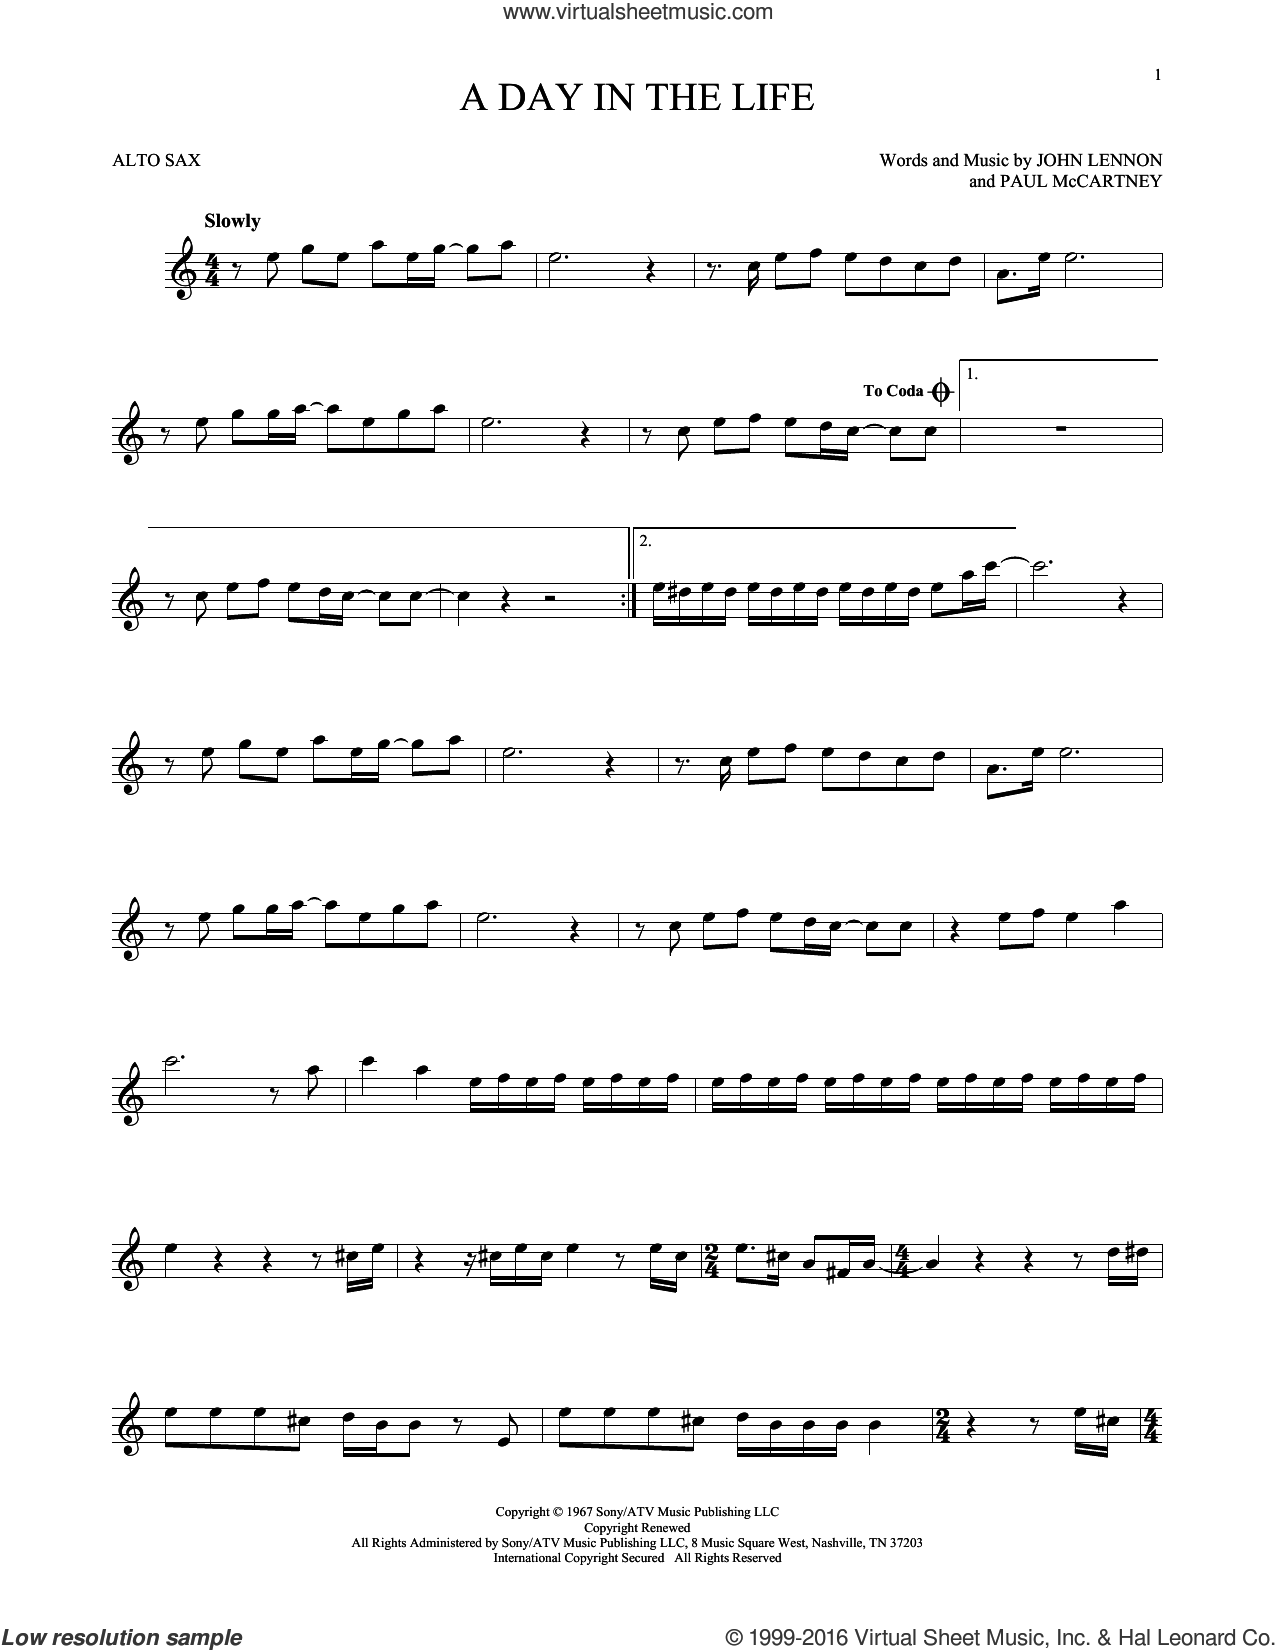 A Day In The Life sheet music for alto saxophone solo by Paul McCartney